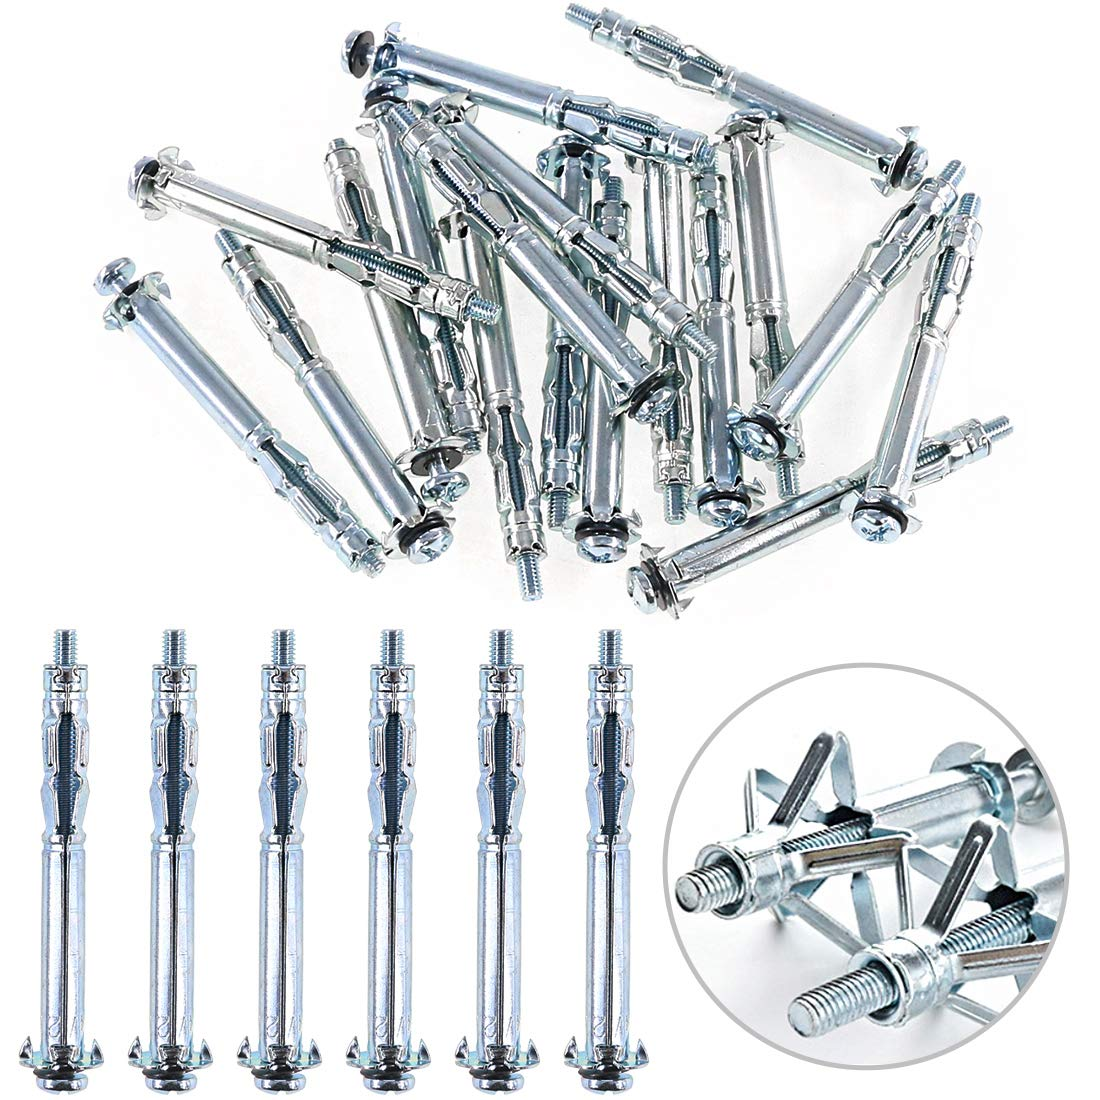 Glarks 80Pcs 6 Size Heavy Duty Zinc Plated Steel Molly Bolt Hollow Drive Wall Anchor Screws Assortment Kit for Drywall Plaster and Tile